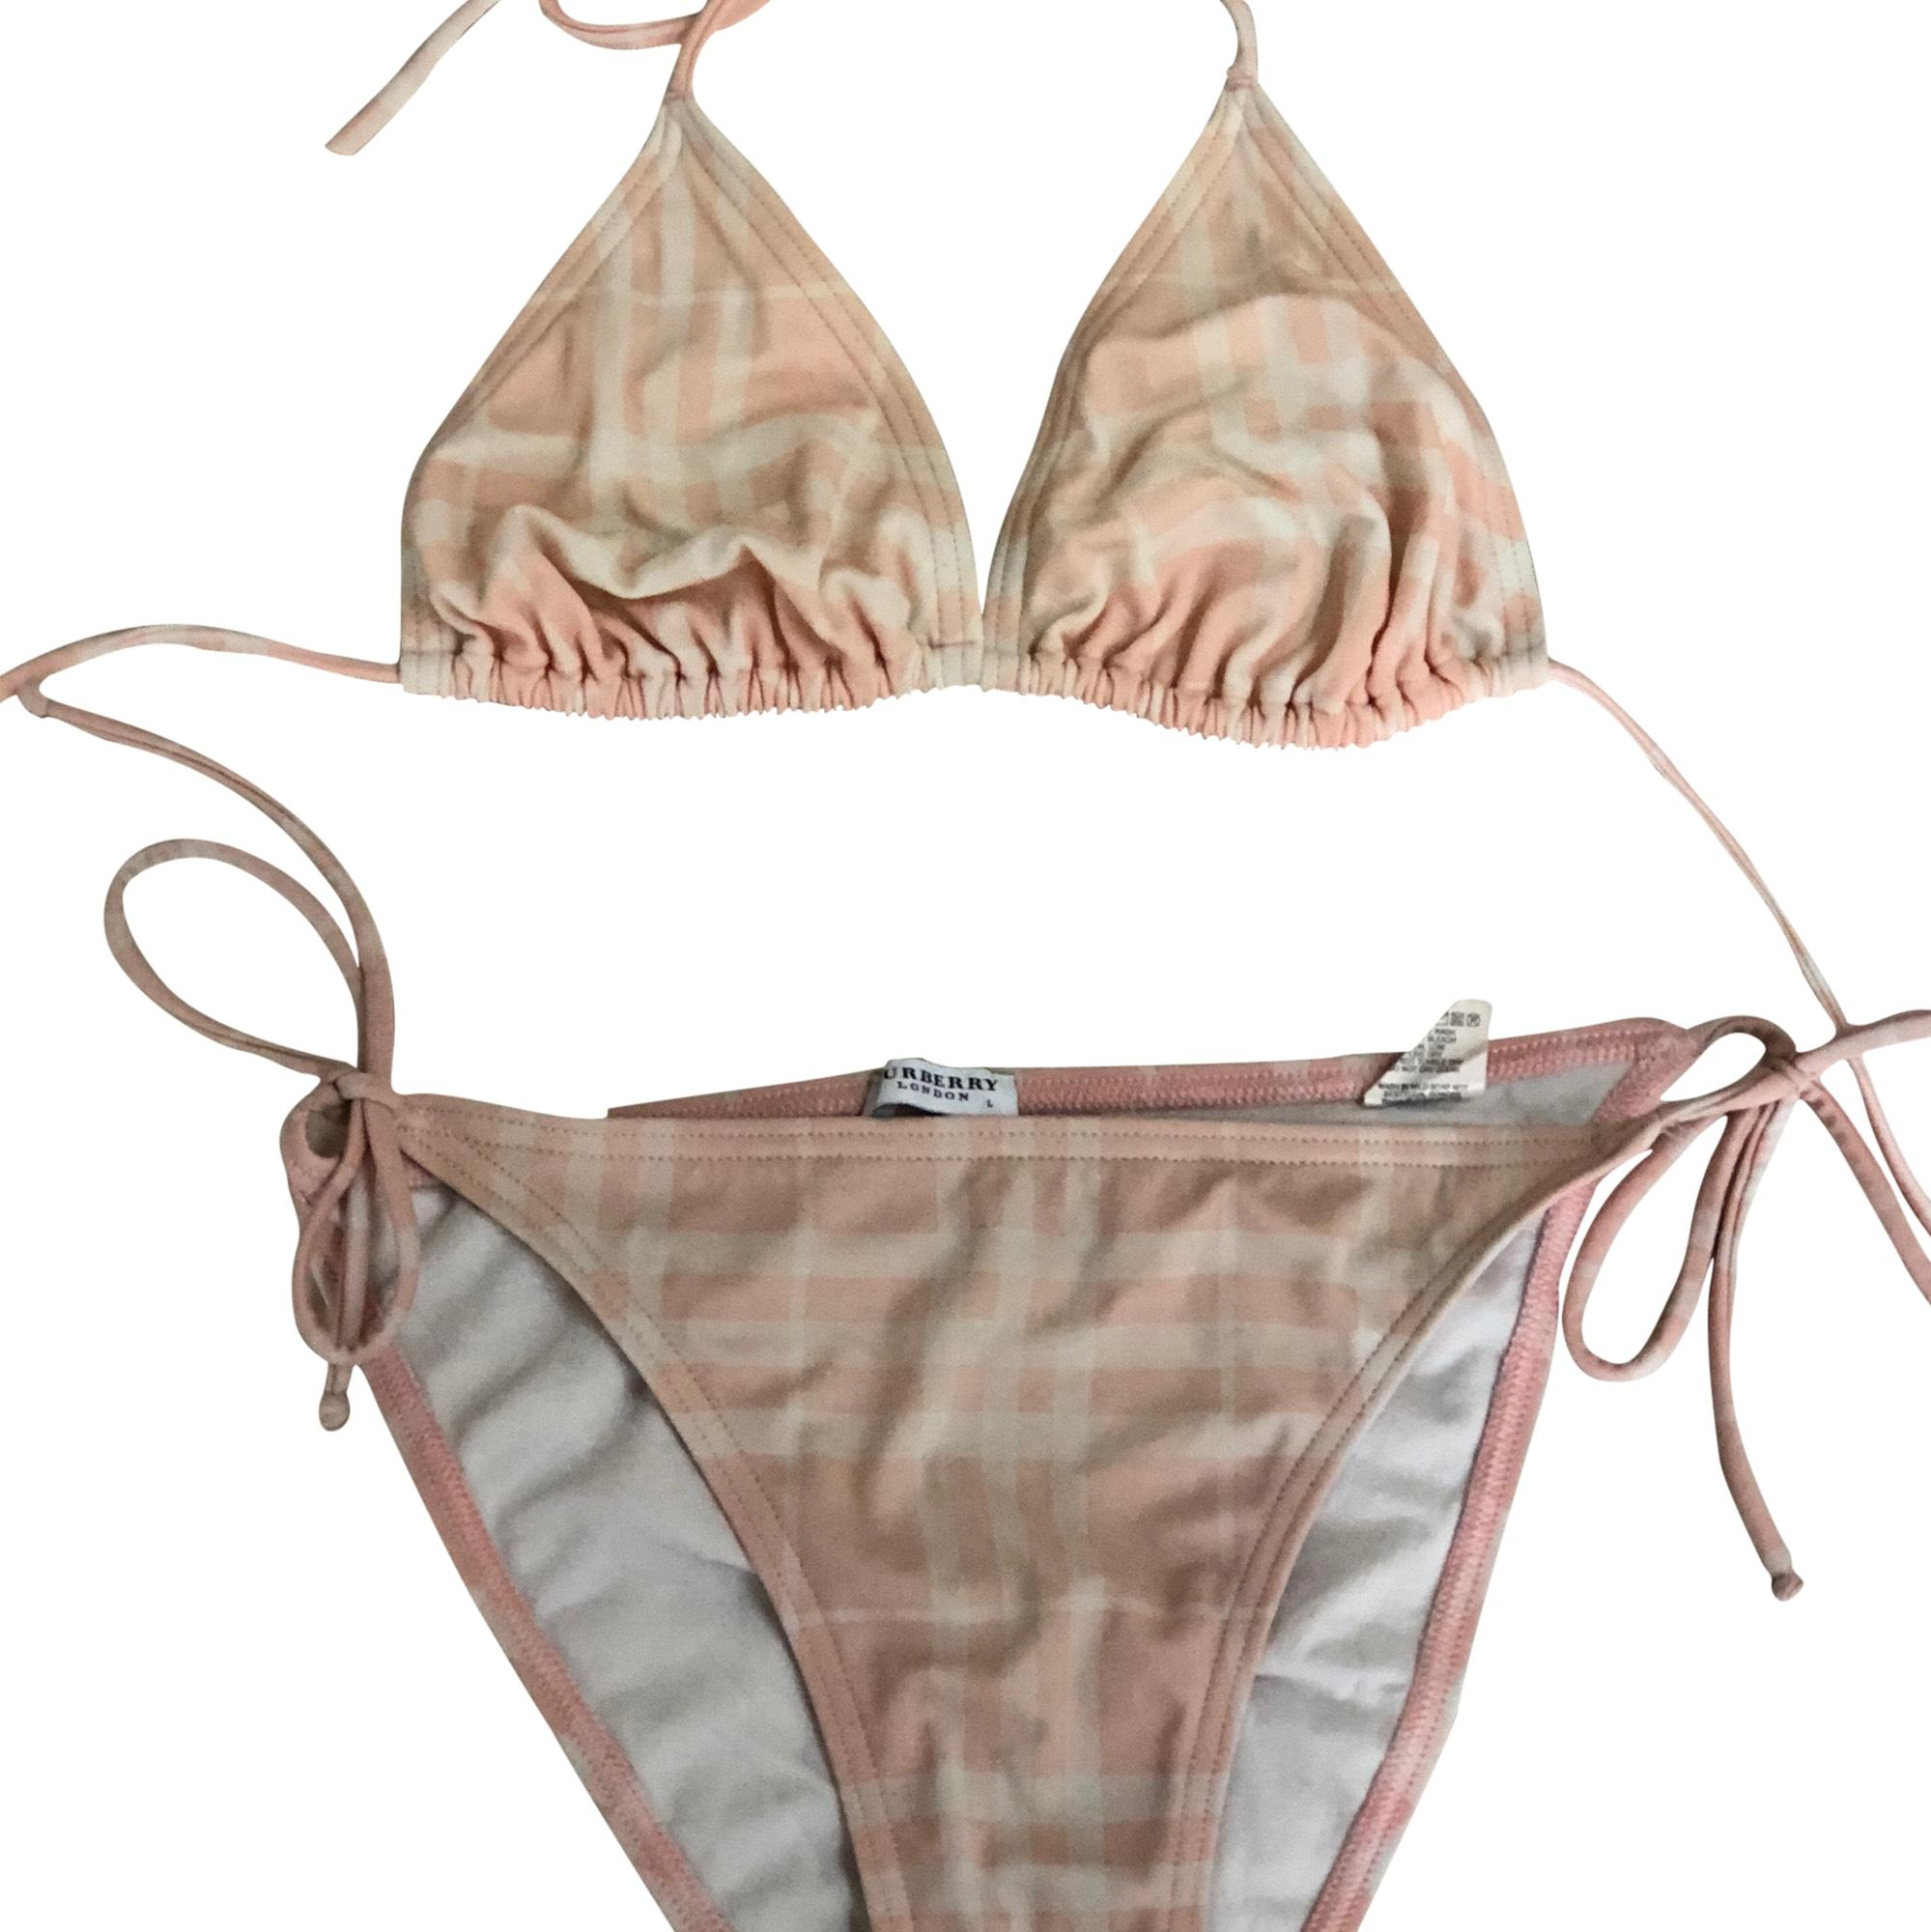 burberry bikini authentic